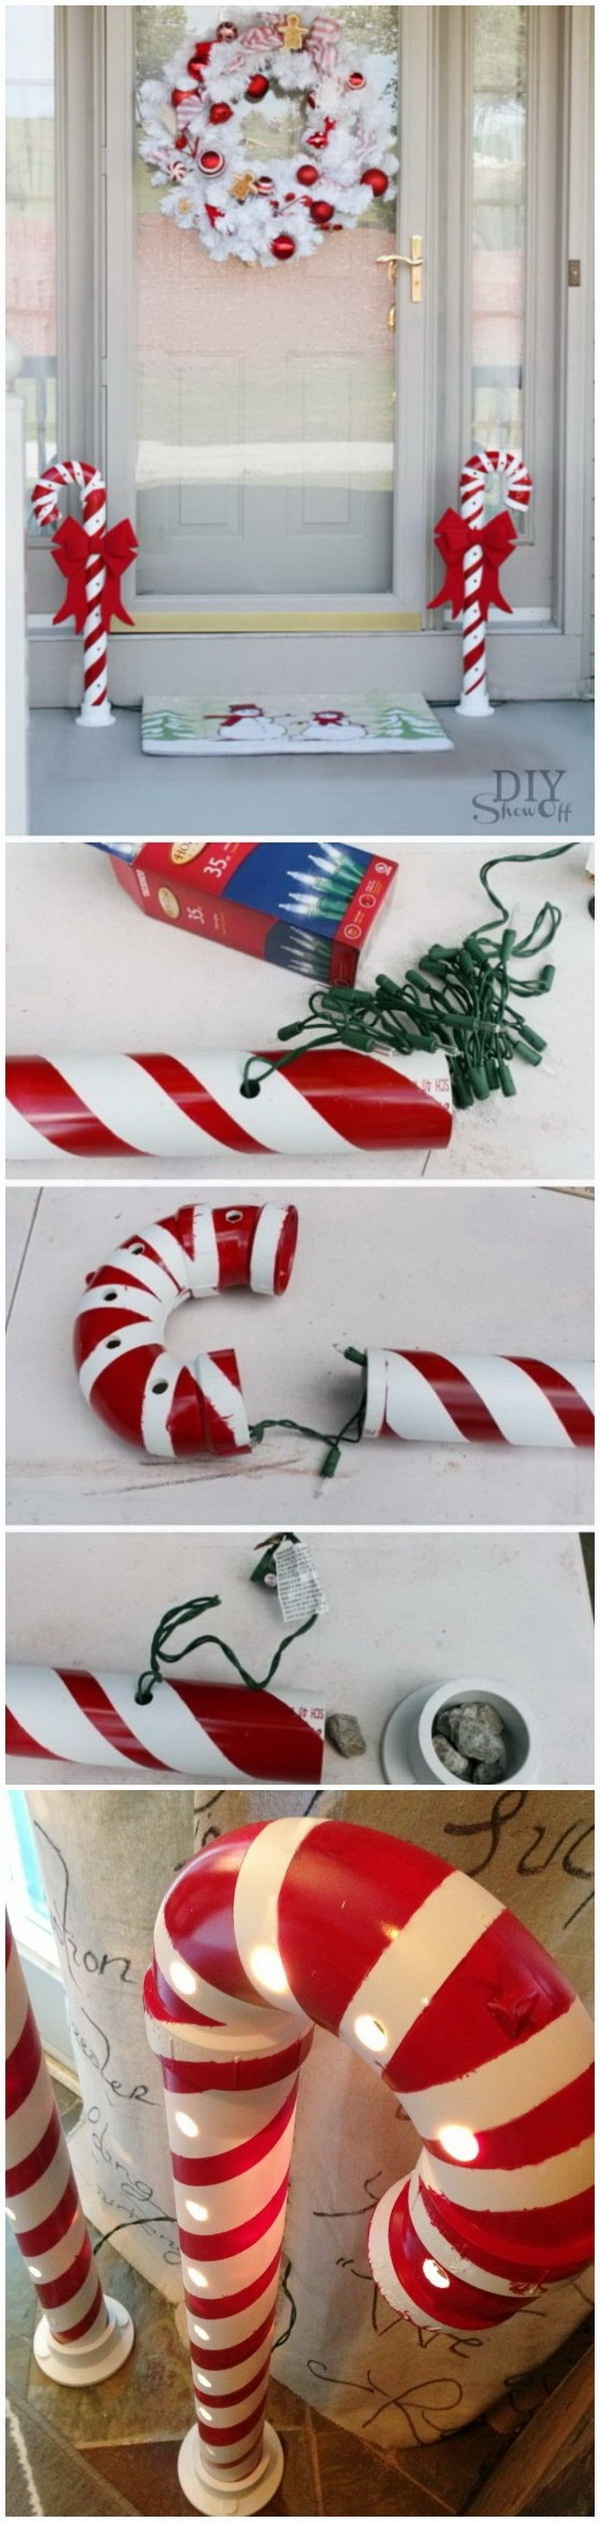 DIY Candy Canes Christmas. Upcycle the PVC pipes lying around somewhere in your home into these cheap and stunning projects to greet guests at the front door. Form the pipes into a candy cane shape with different kinds and sizes and then use tape to paint the twisted red stripes for the candy cane look.